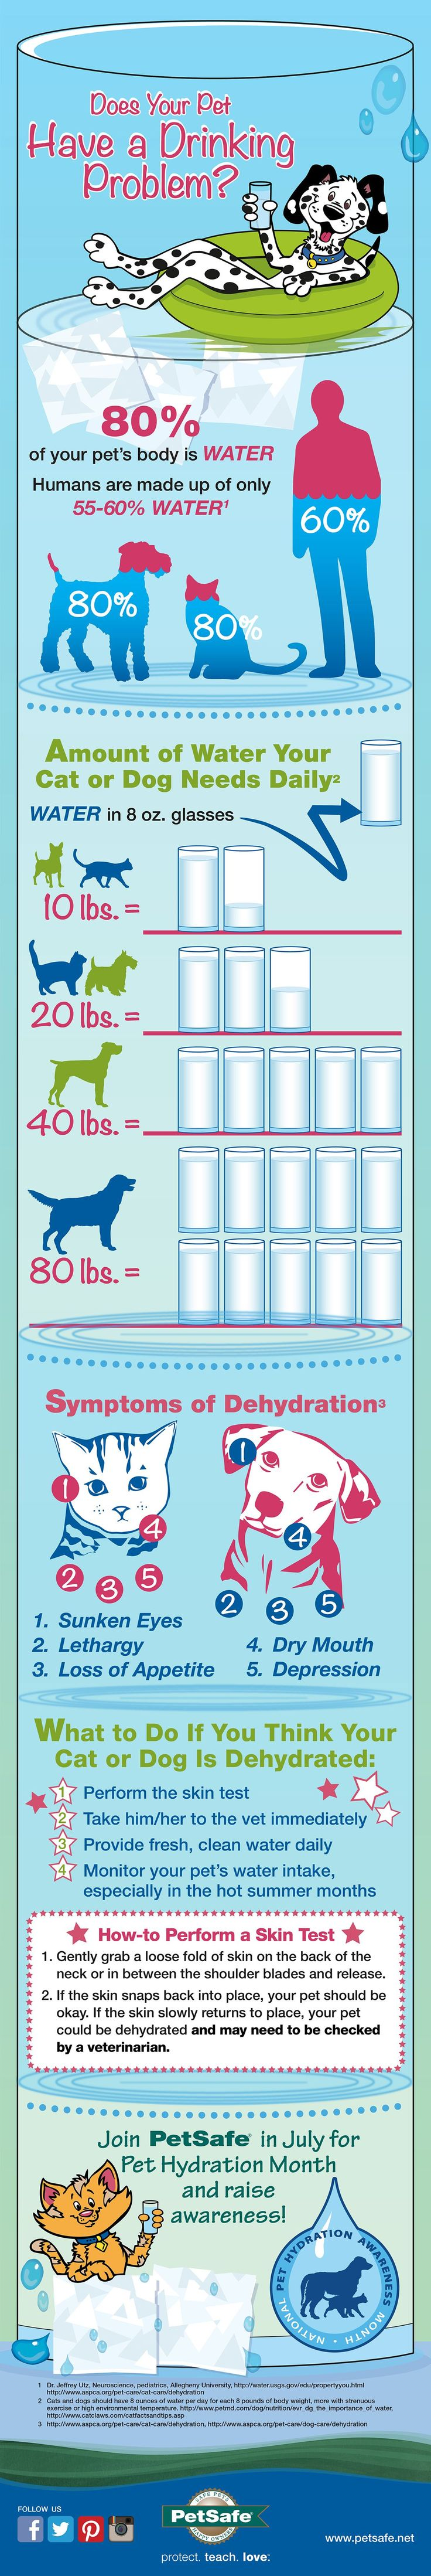 How Much Water Does Your Pet Need?